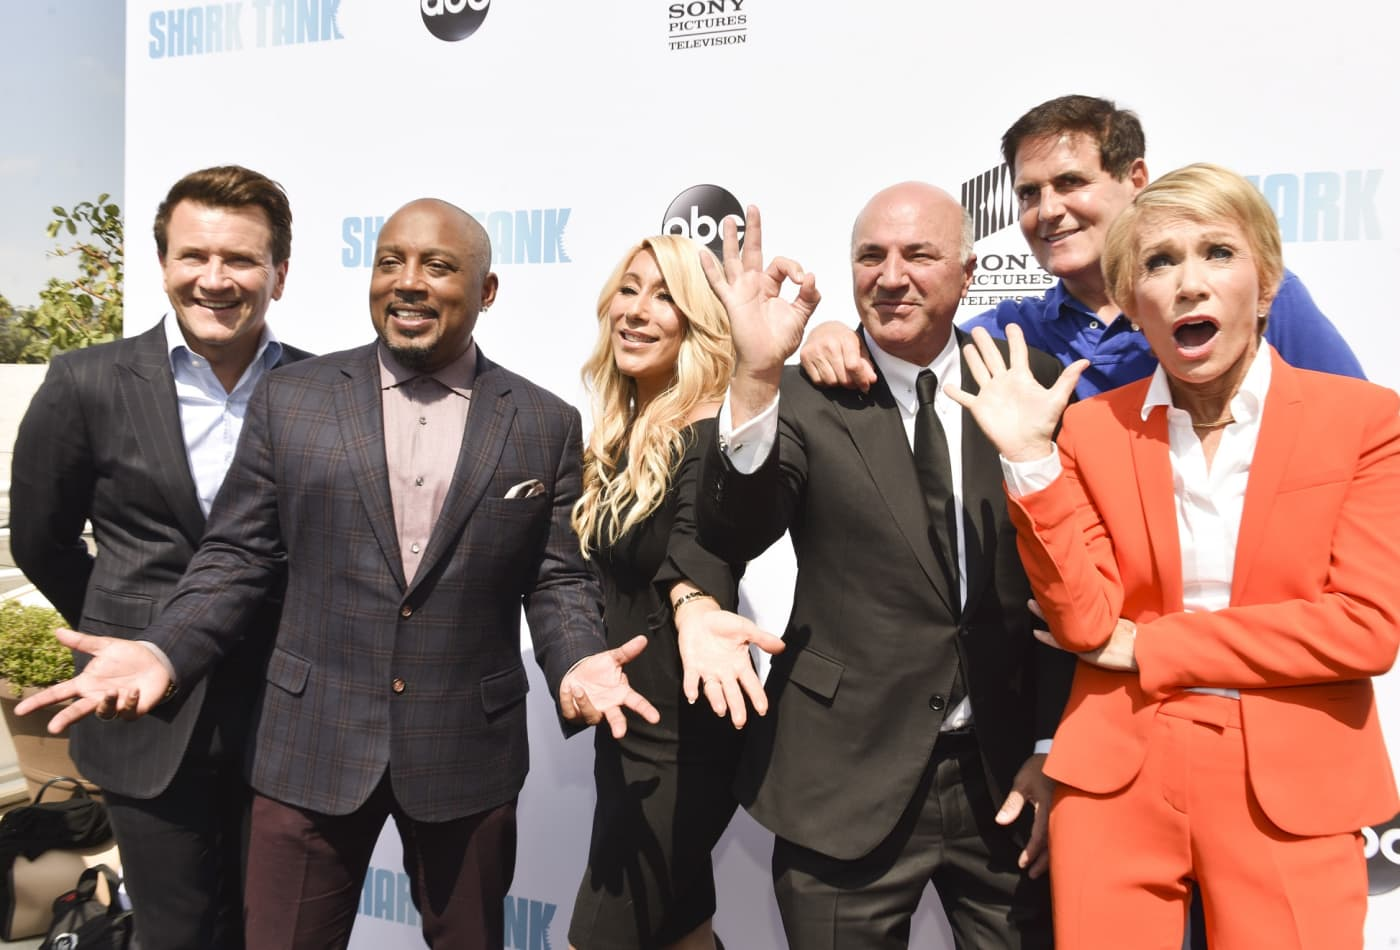 472a731e38 Sharks Robert Herjavec, Daymond John, Lori Greiner, Kevin O'Leary, Mark  Cuban, and Barbara Corcoran attend the premiere of ABC's 'Shark Tank'  Season 9 at ...